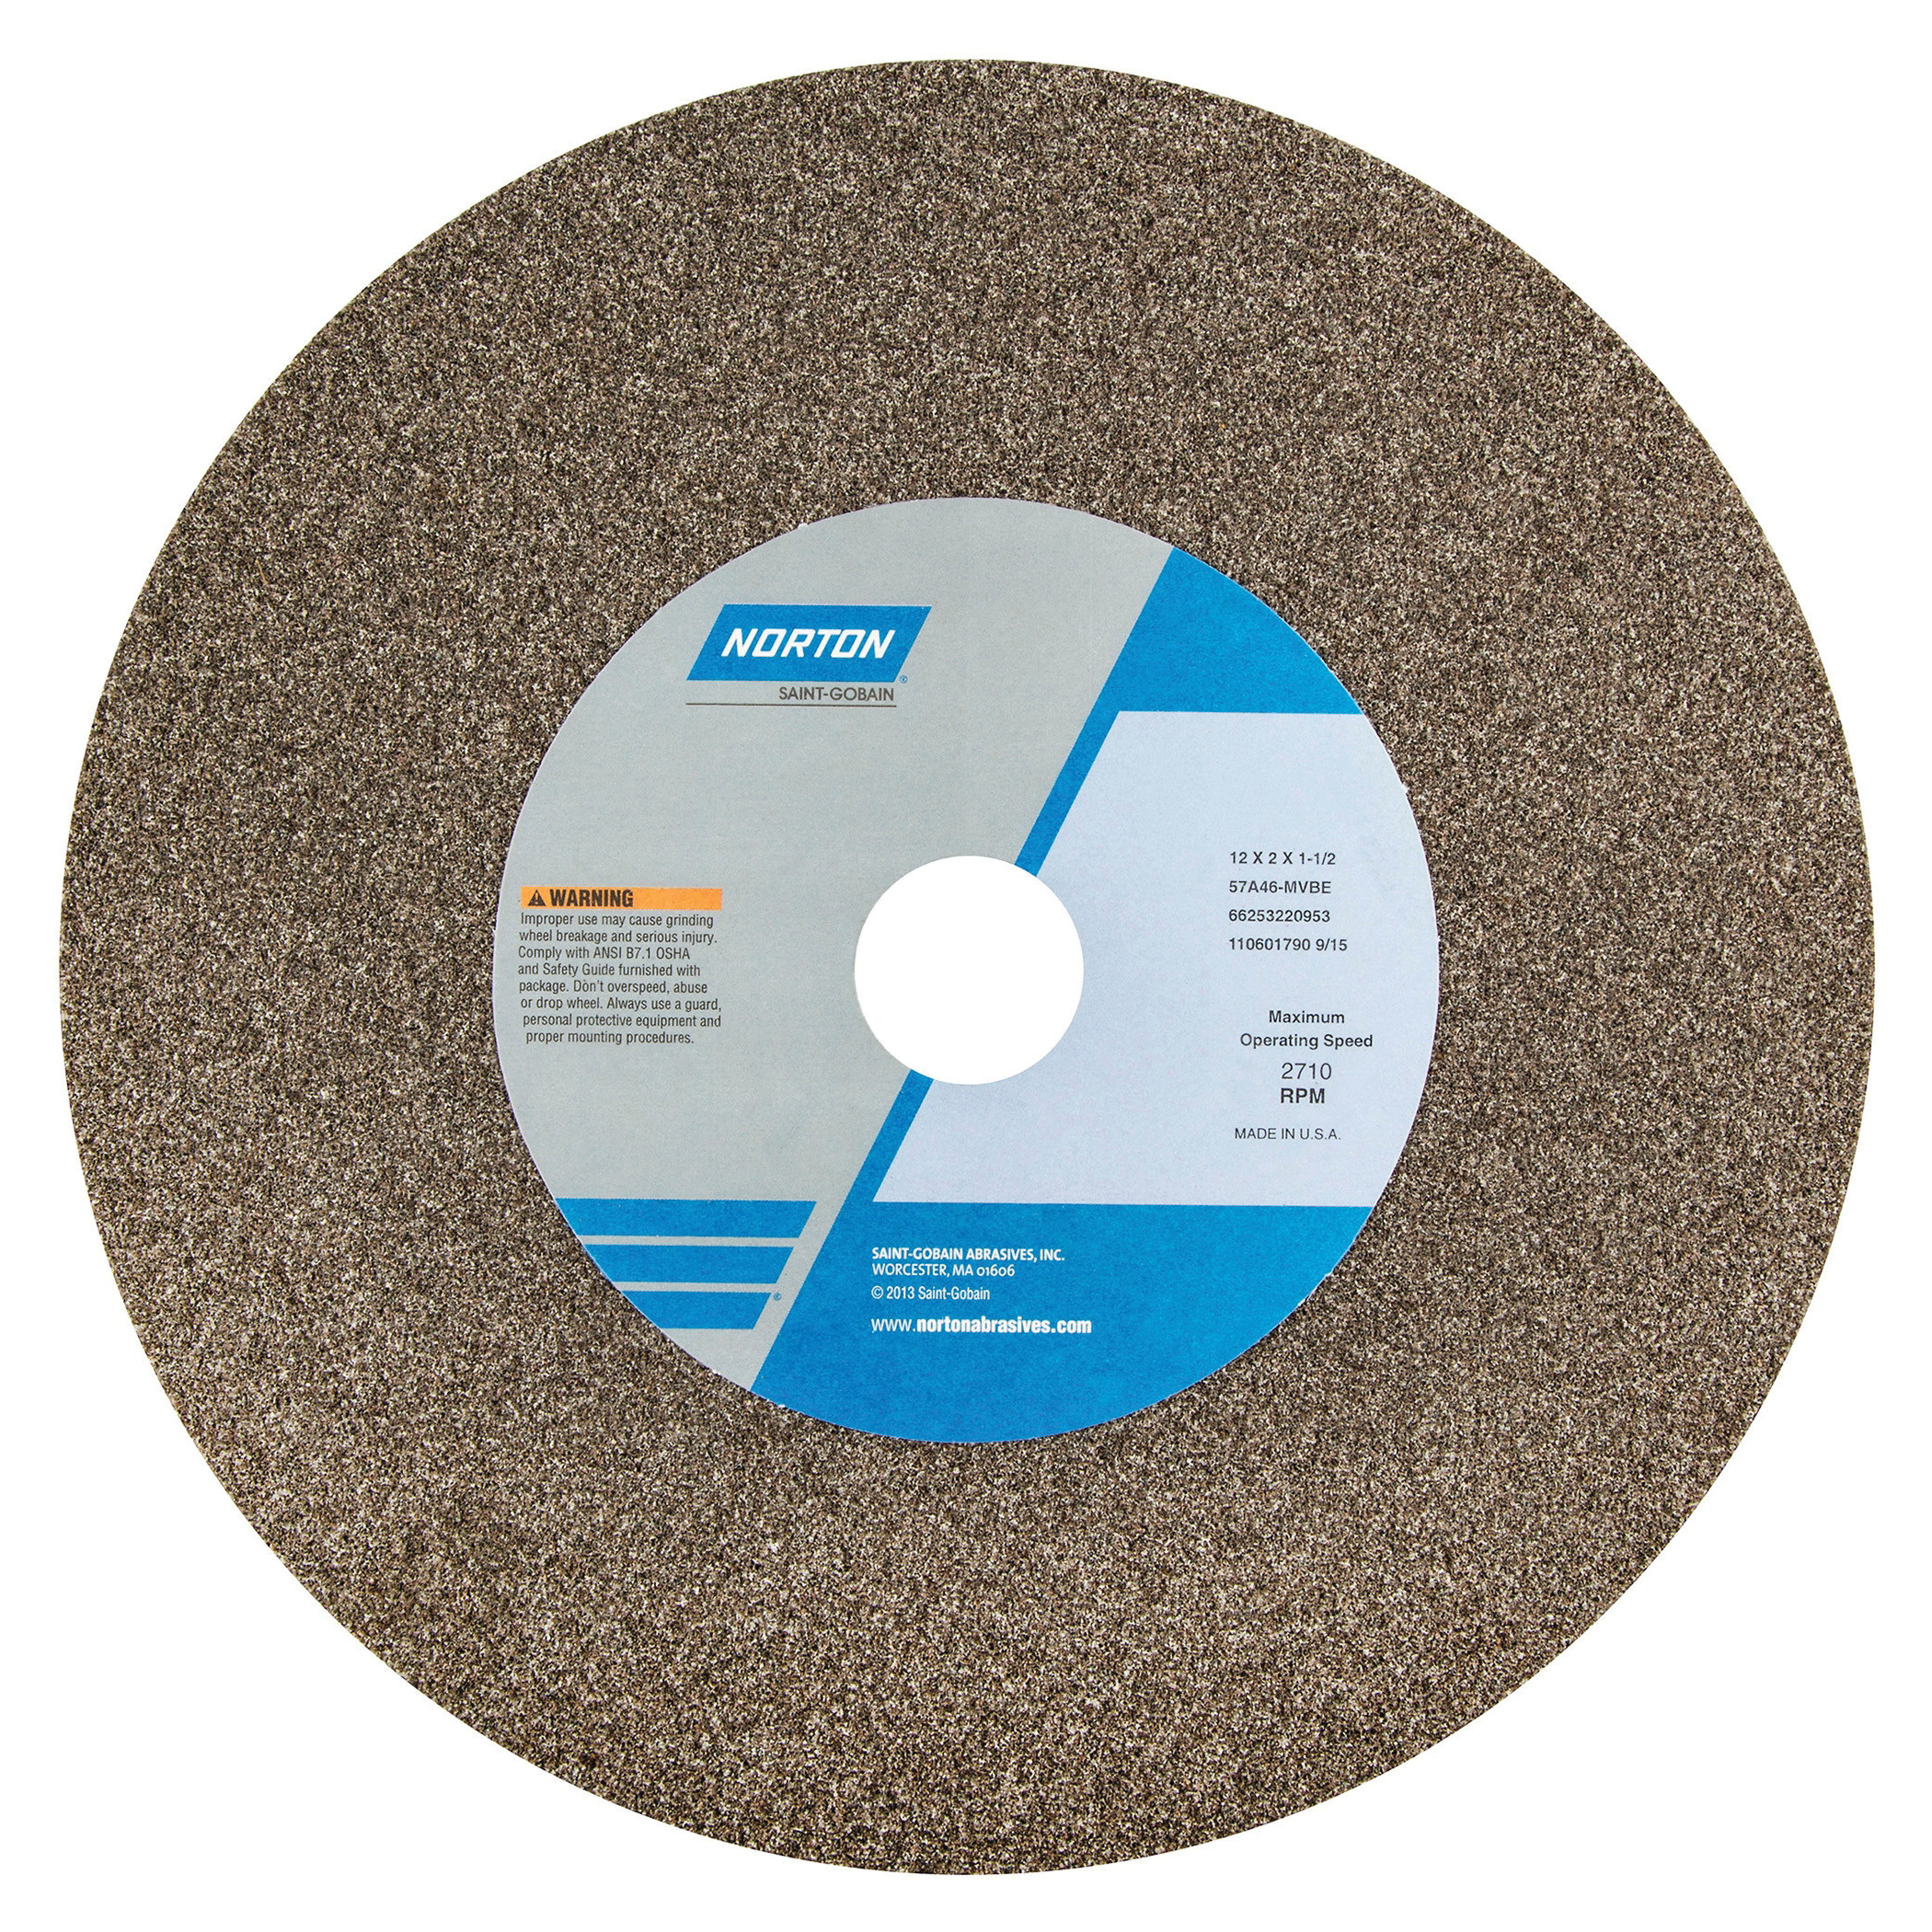 Norton® 66253116280 57A Type 01 Bench and Pedestal Grinding Wheel, 10 in Dia x 1-1/2 in THK, 1-1/4 in Center Hole, 46 Grit, Aluminum Oxide Abrasive